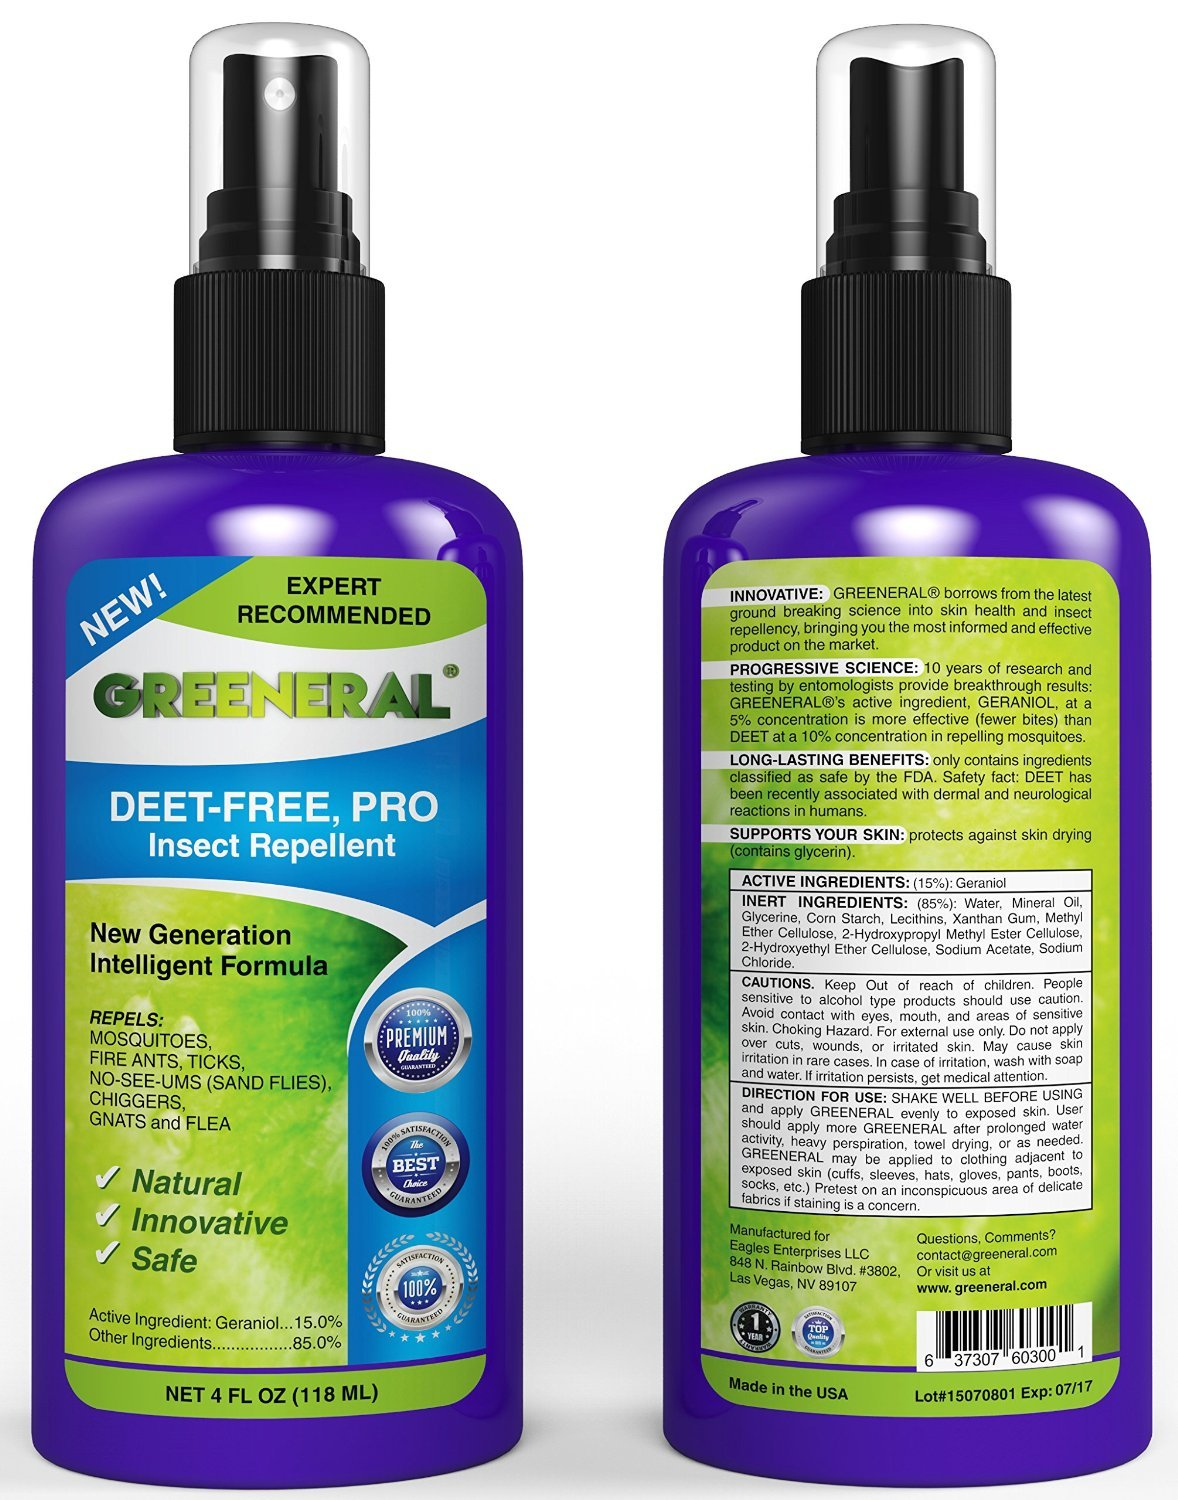 Greeneral PRO Natural Insect Repellent Spray